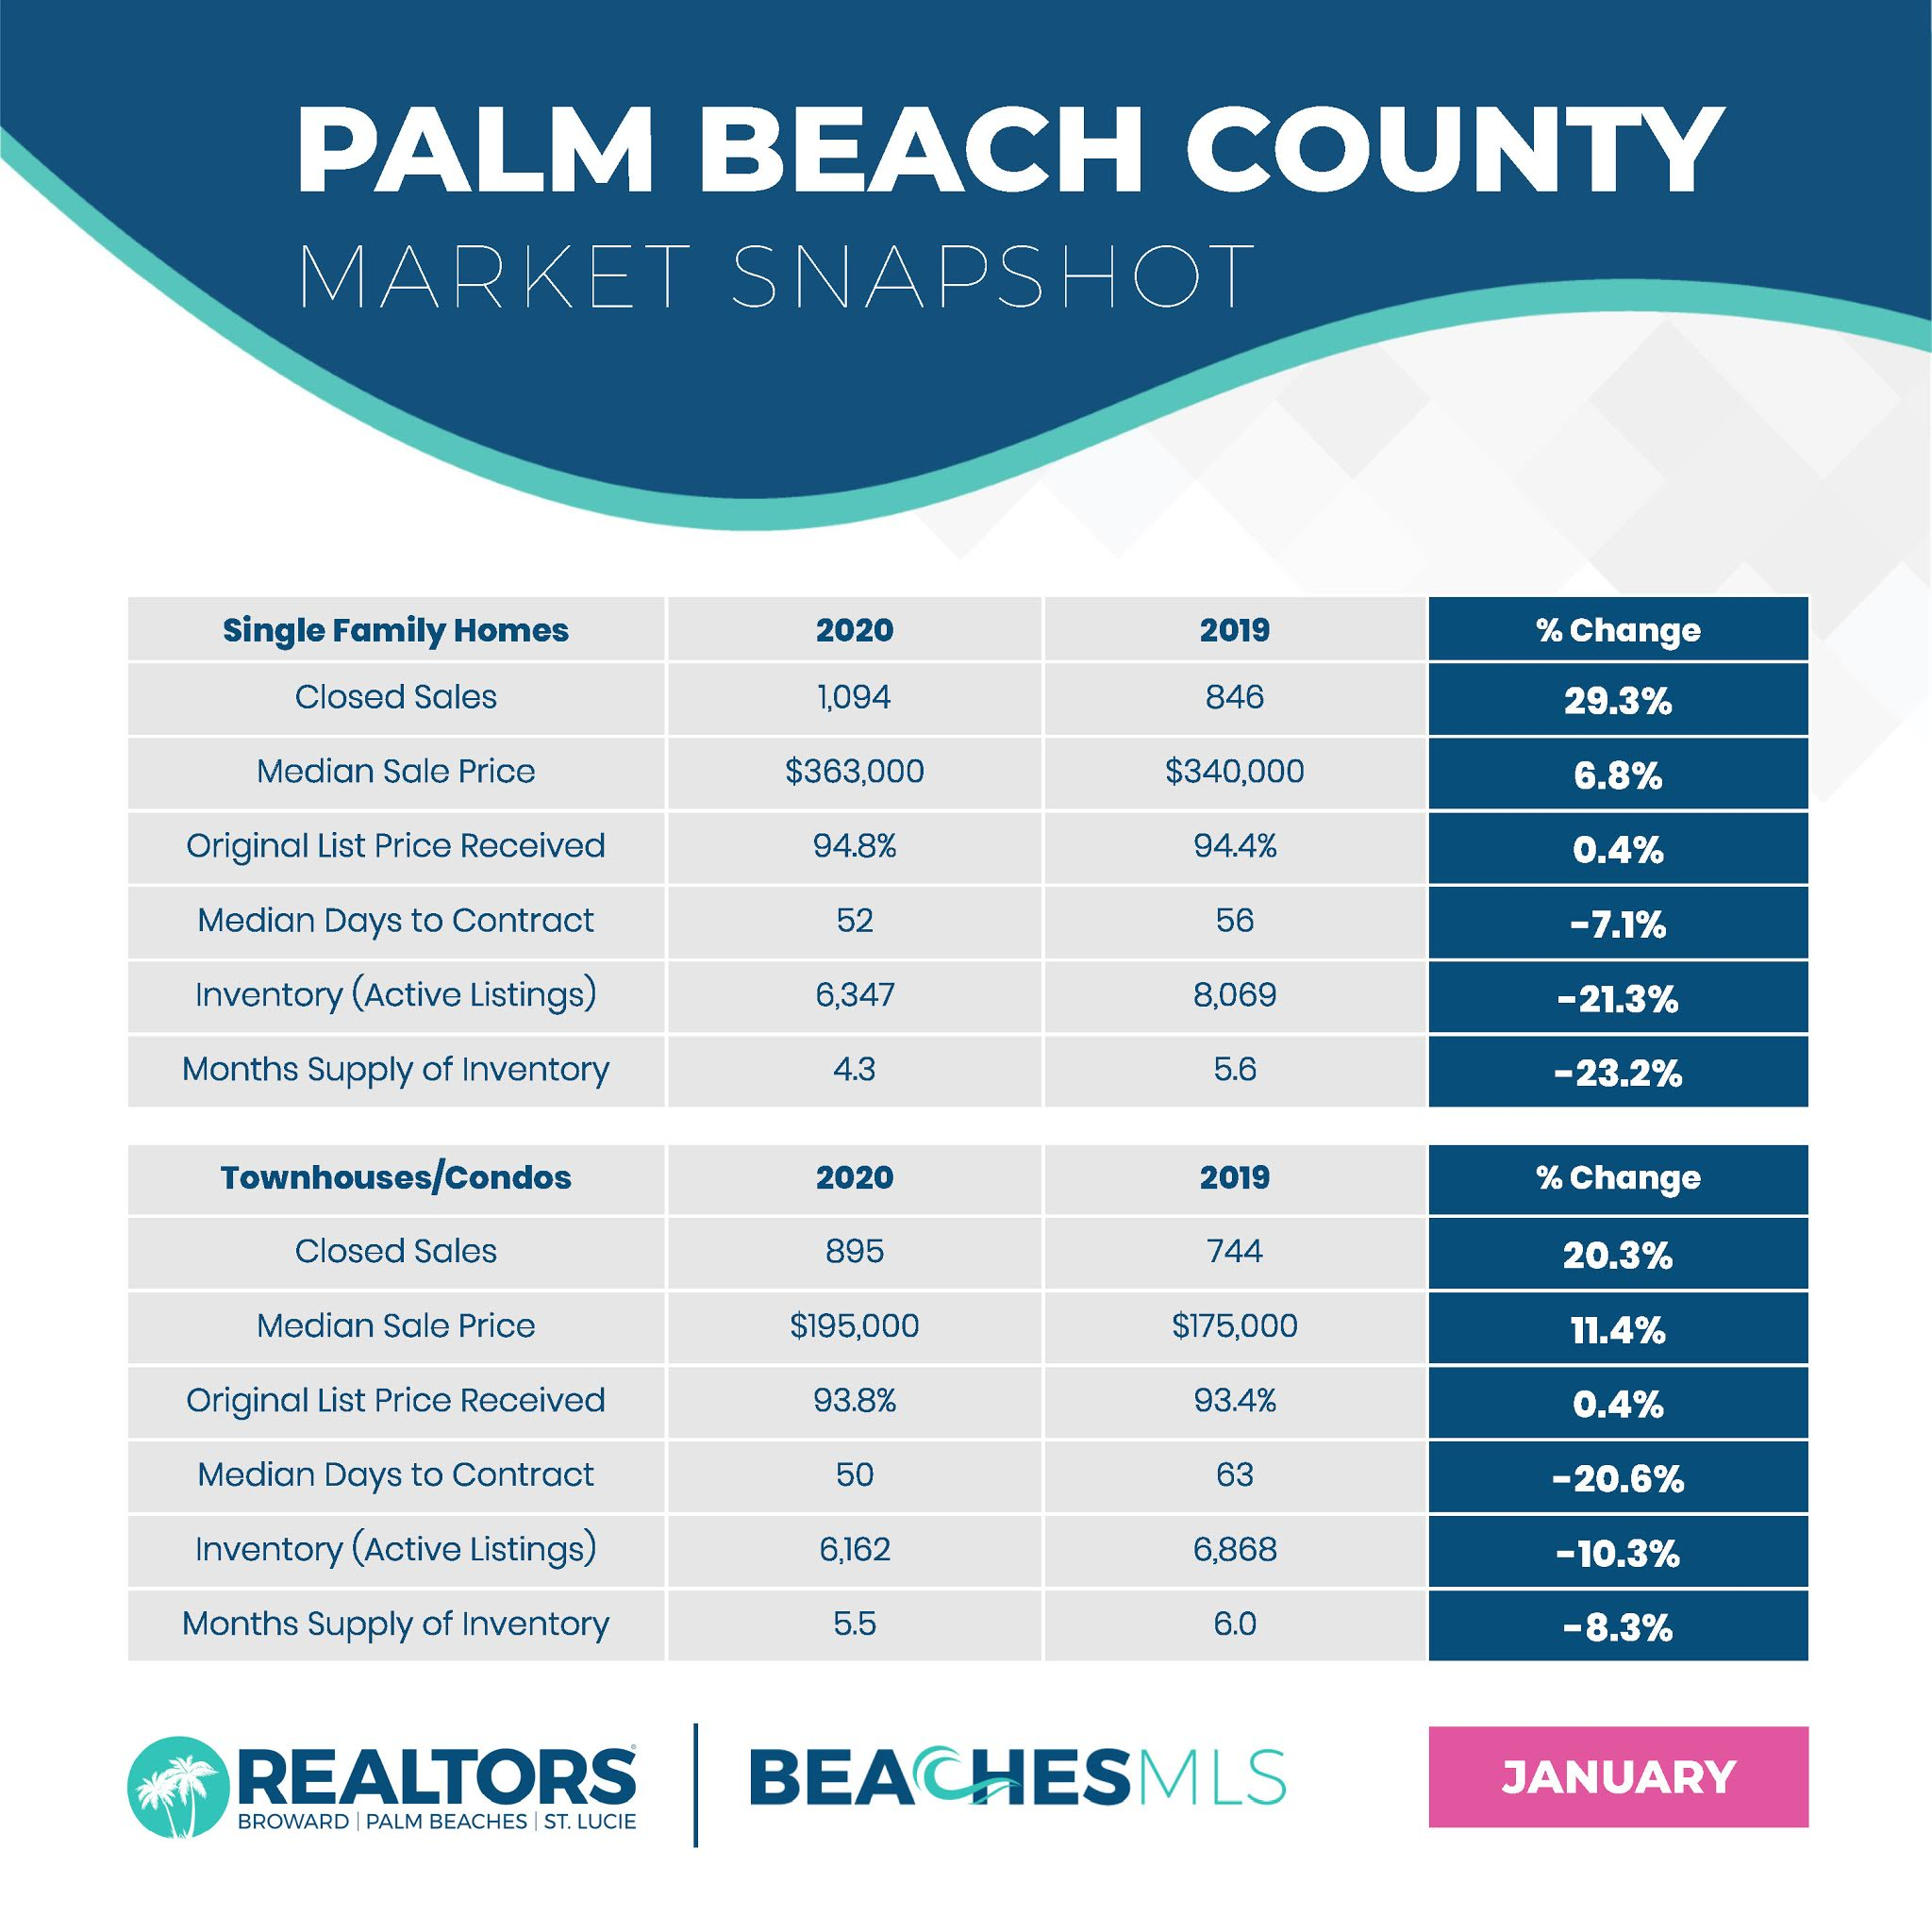 Palm Beach County Statistics for January 2020